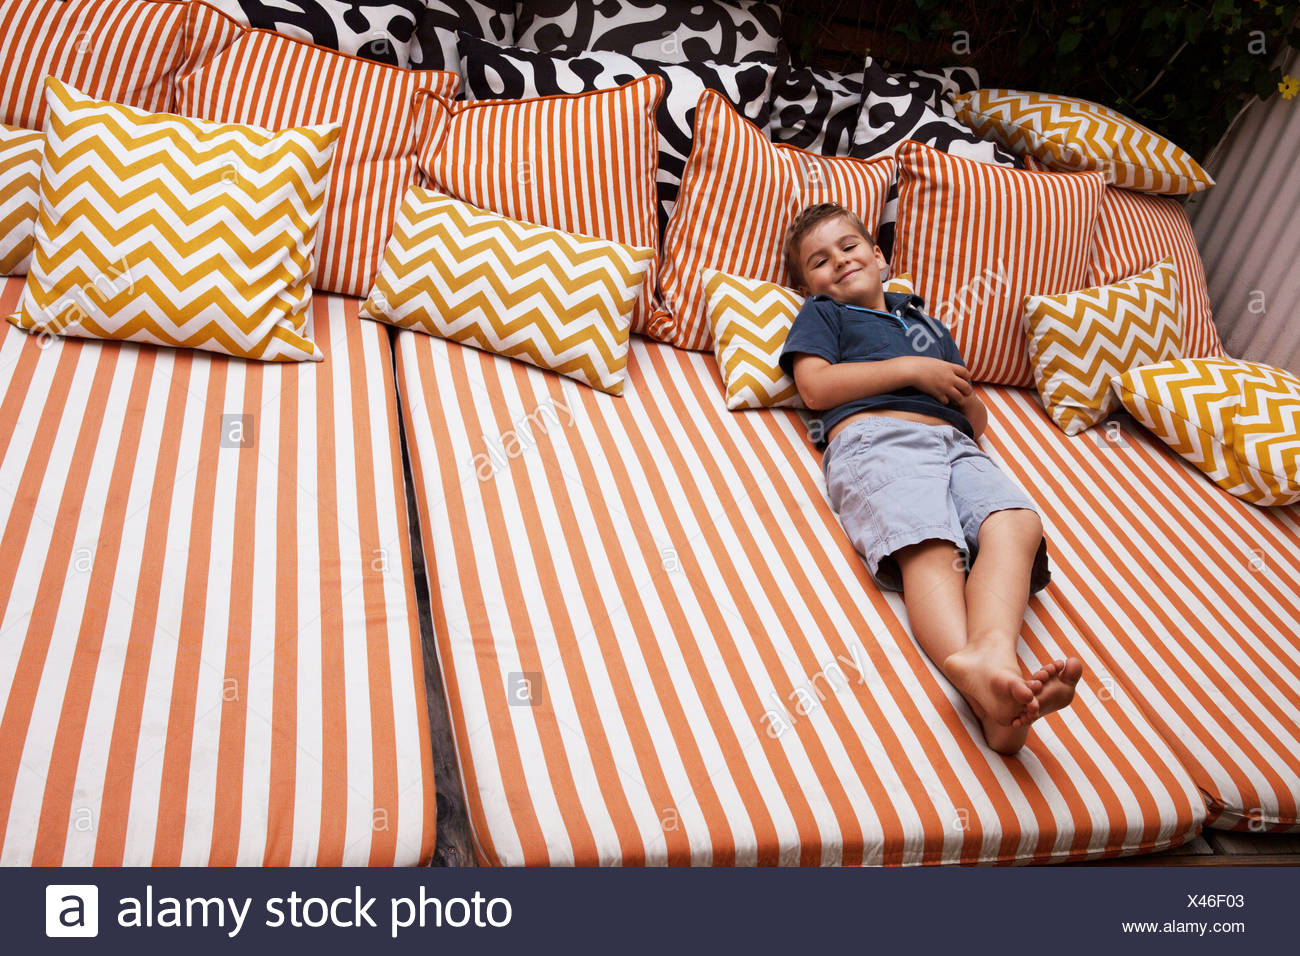 Boy relaxing on striped outdoor furniture with cushions - Stock Image